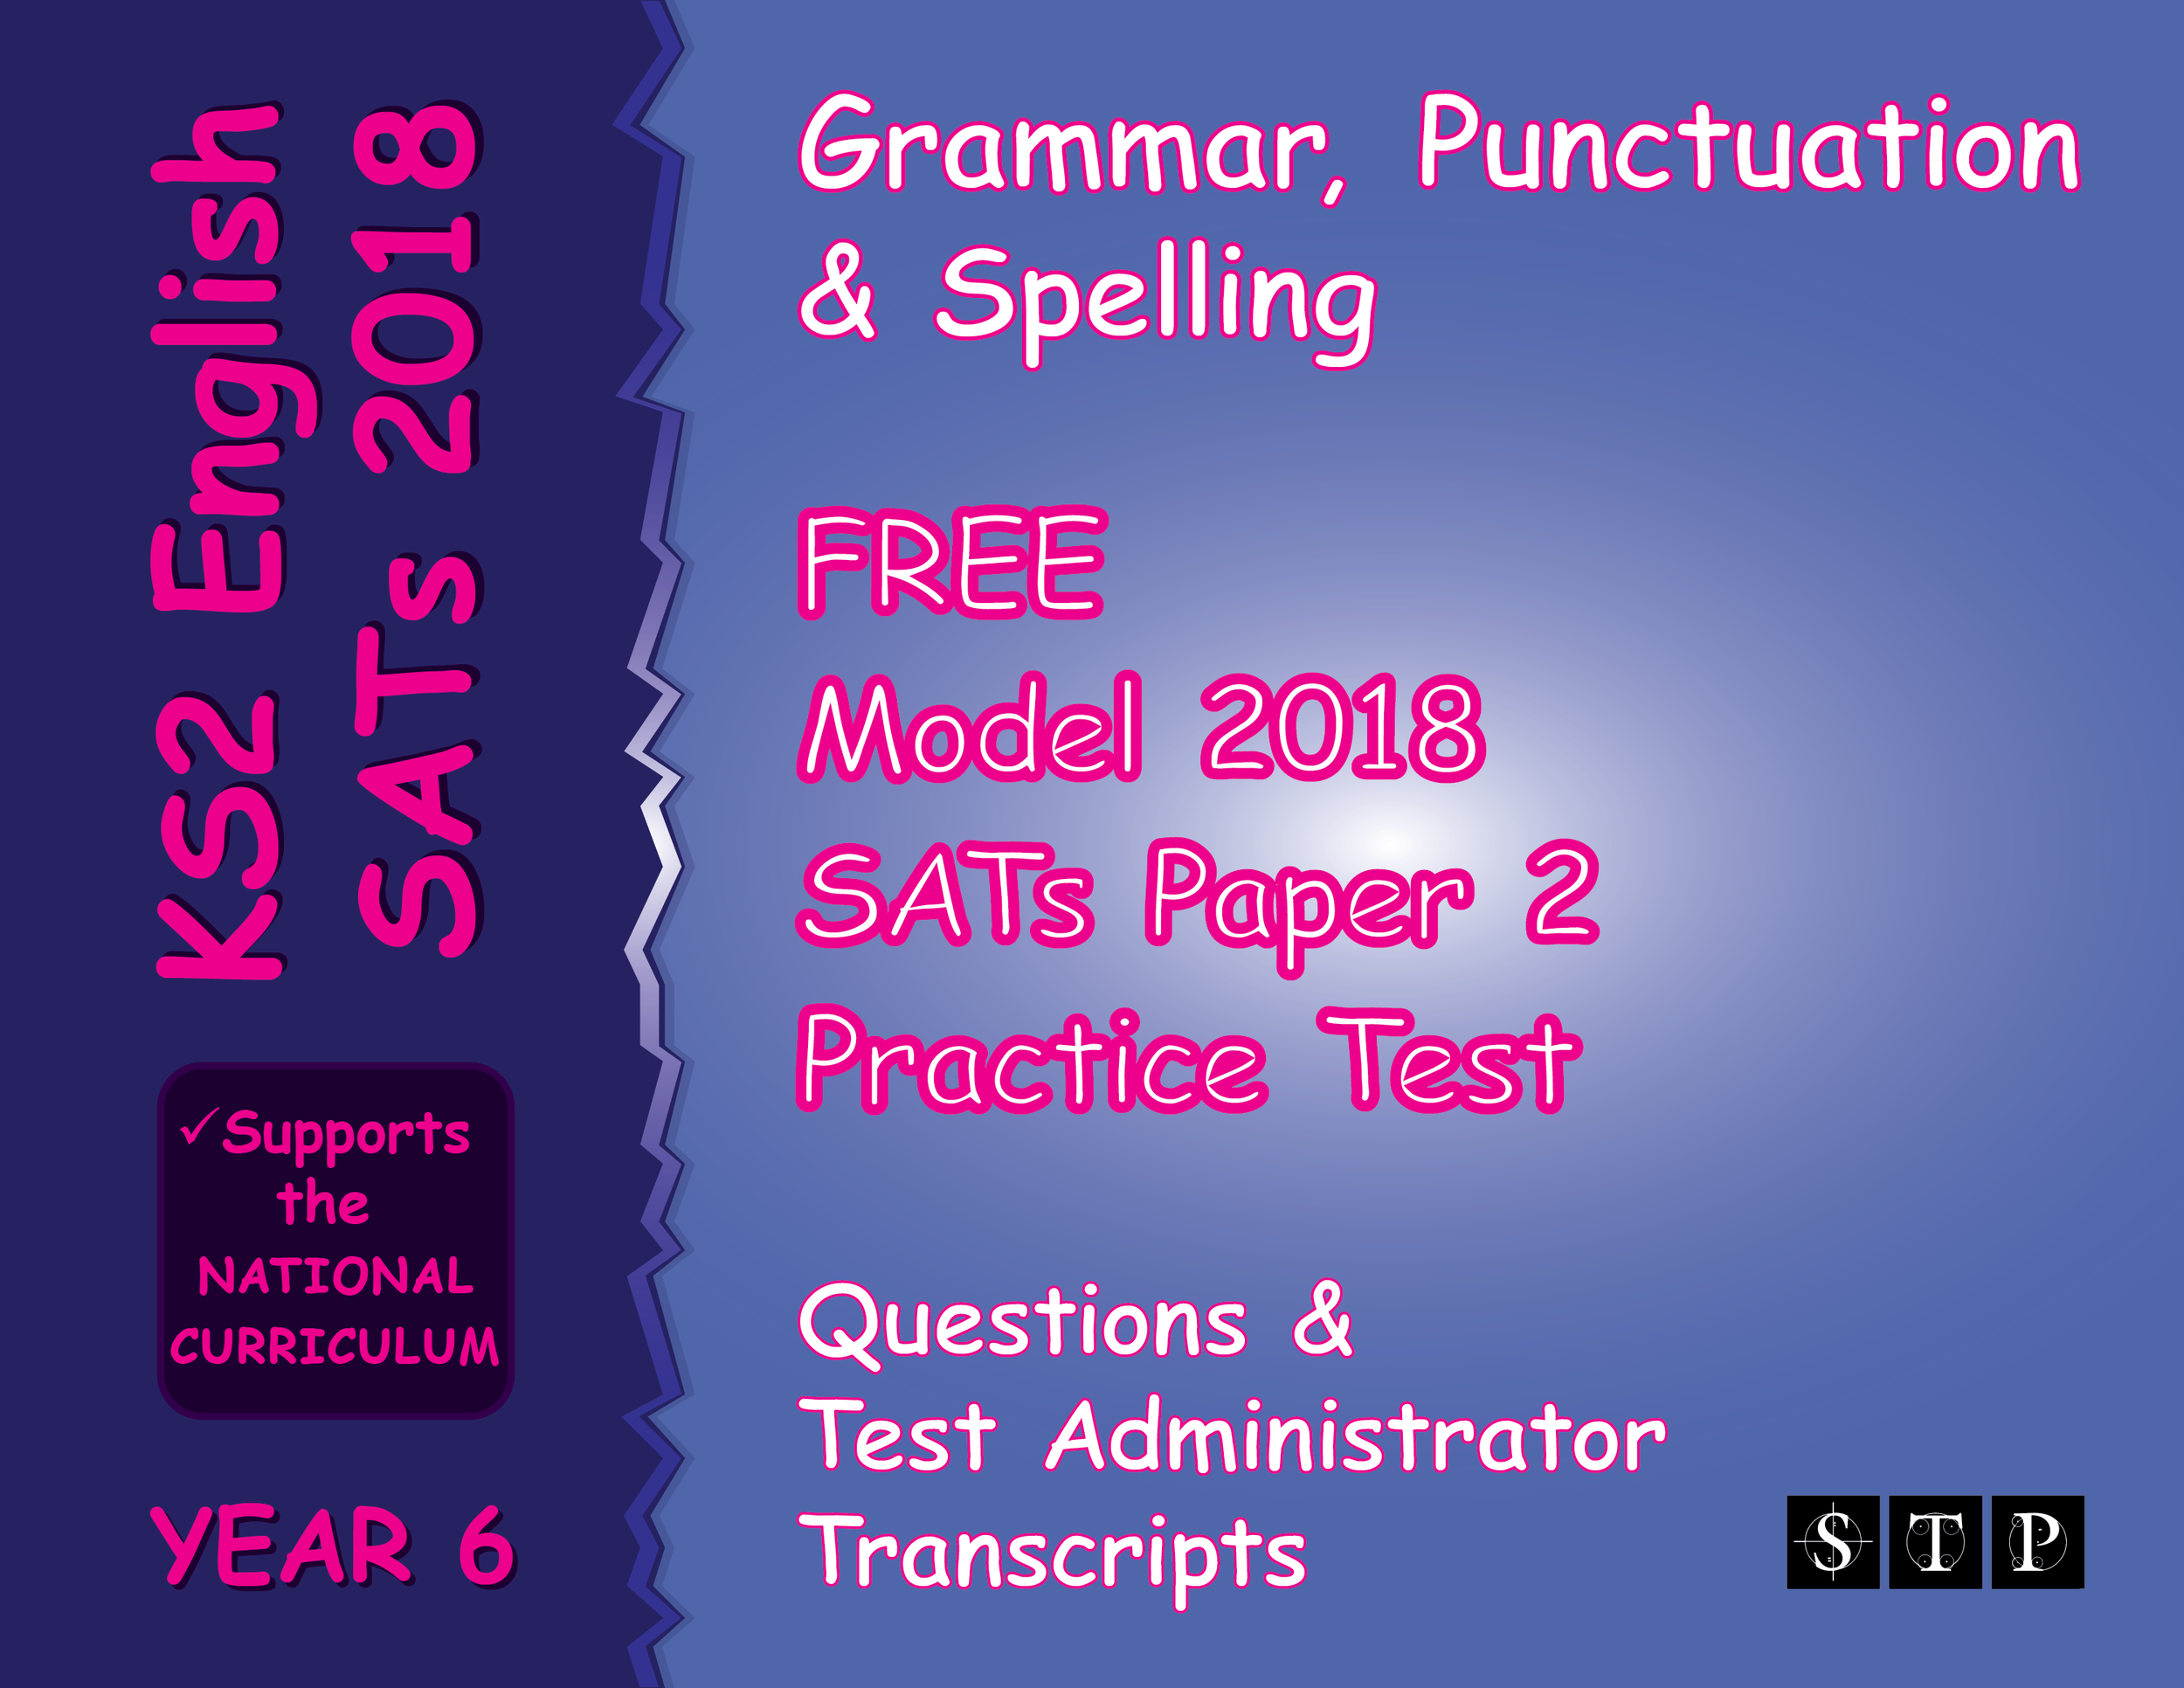 Free 2018 KS2 SATs English Paper 2 Test - VIEWABLE, DOWNLOADABLE & PRINTABLE PDFs!